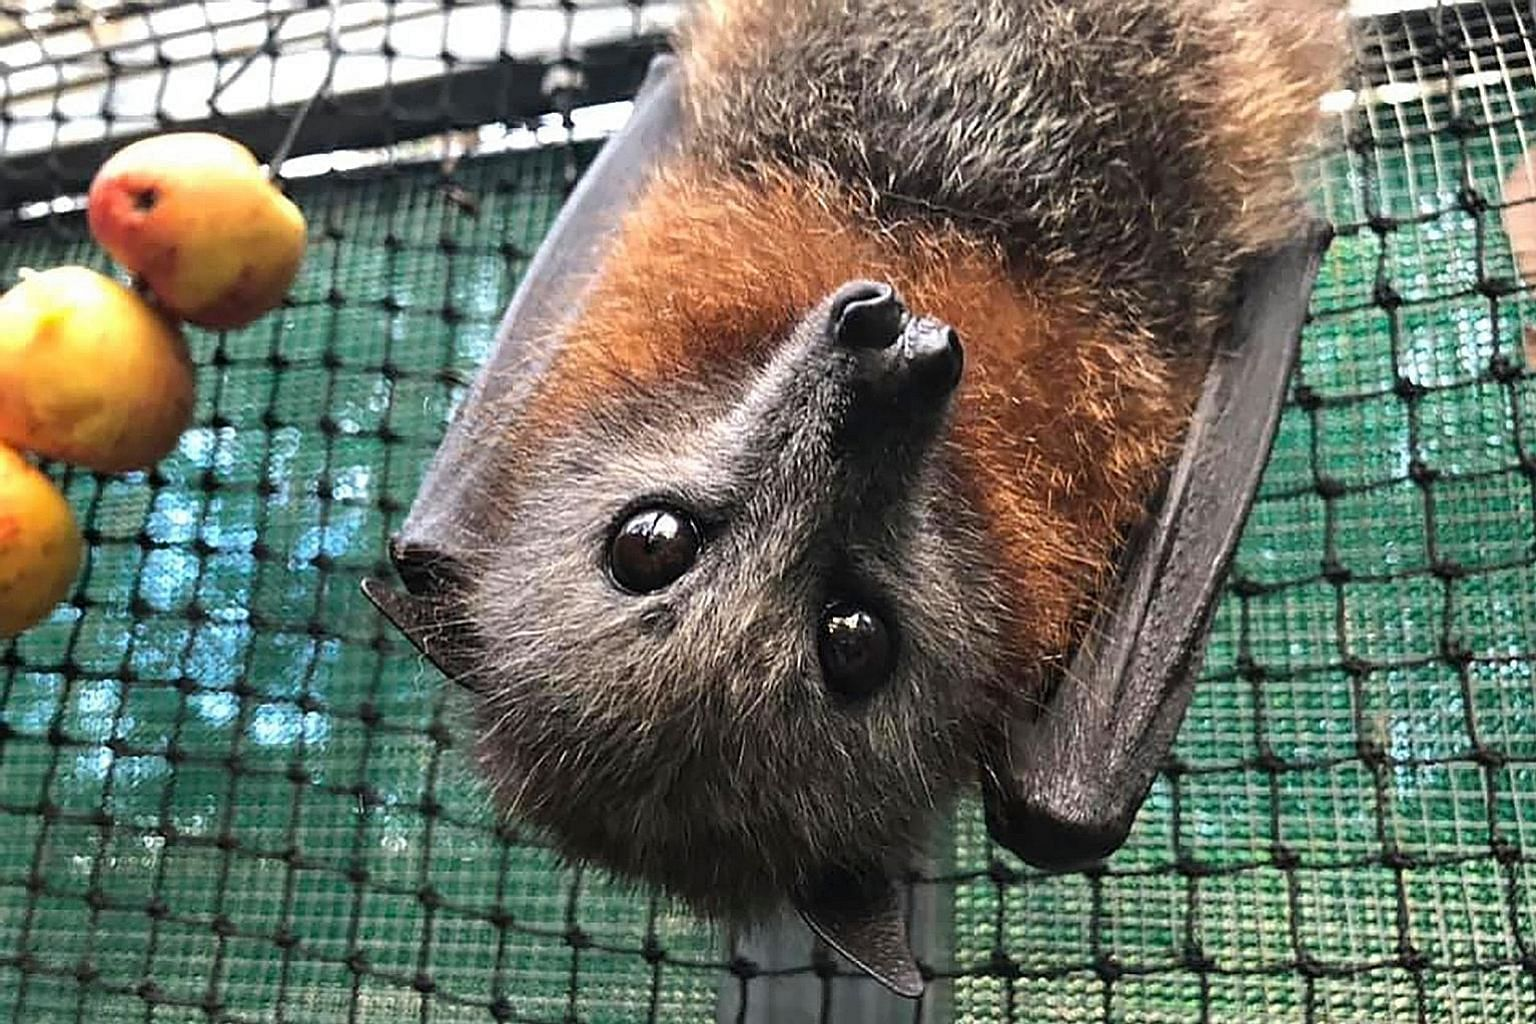 A fruit bat rescued by Bats Queensland amid an extended drought in Australia. PHOTO: AGENCE FRANCE-PRESSE